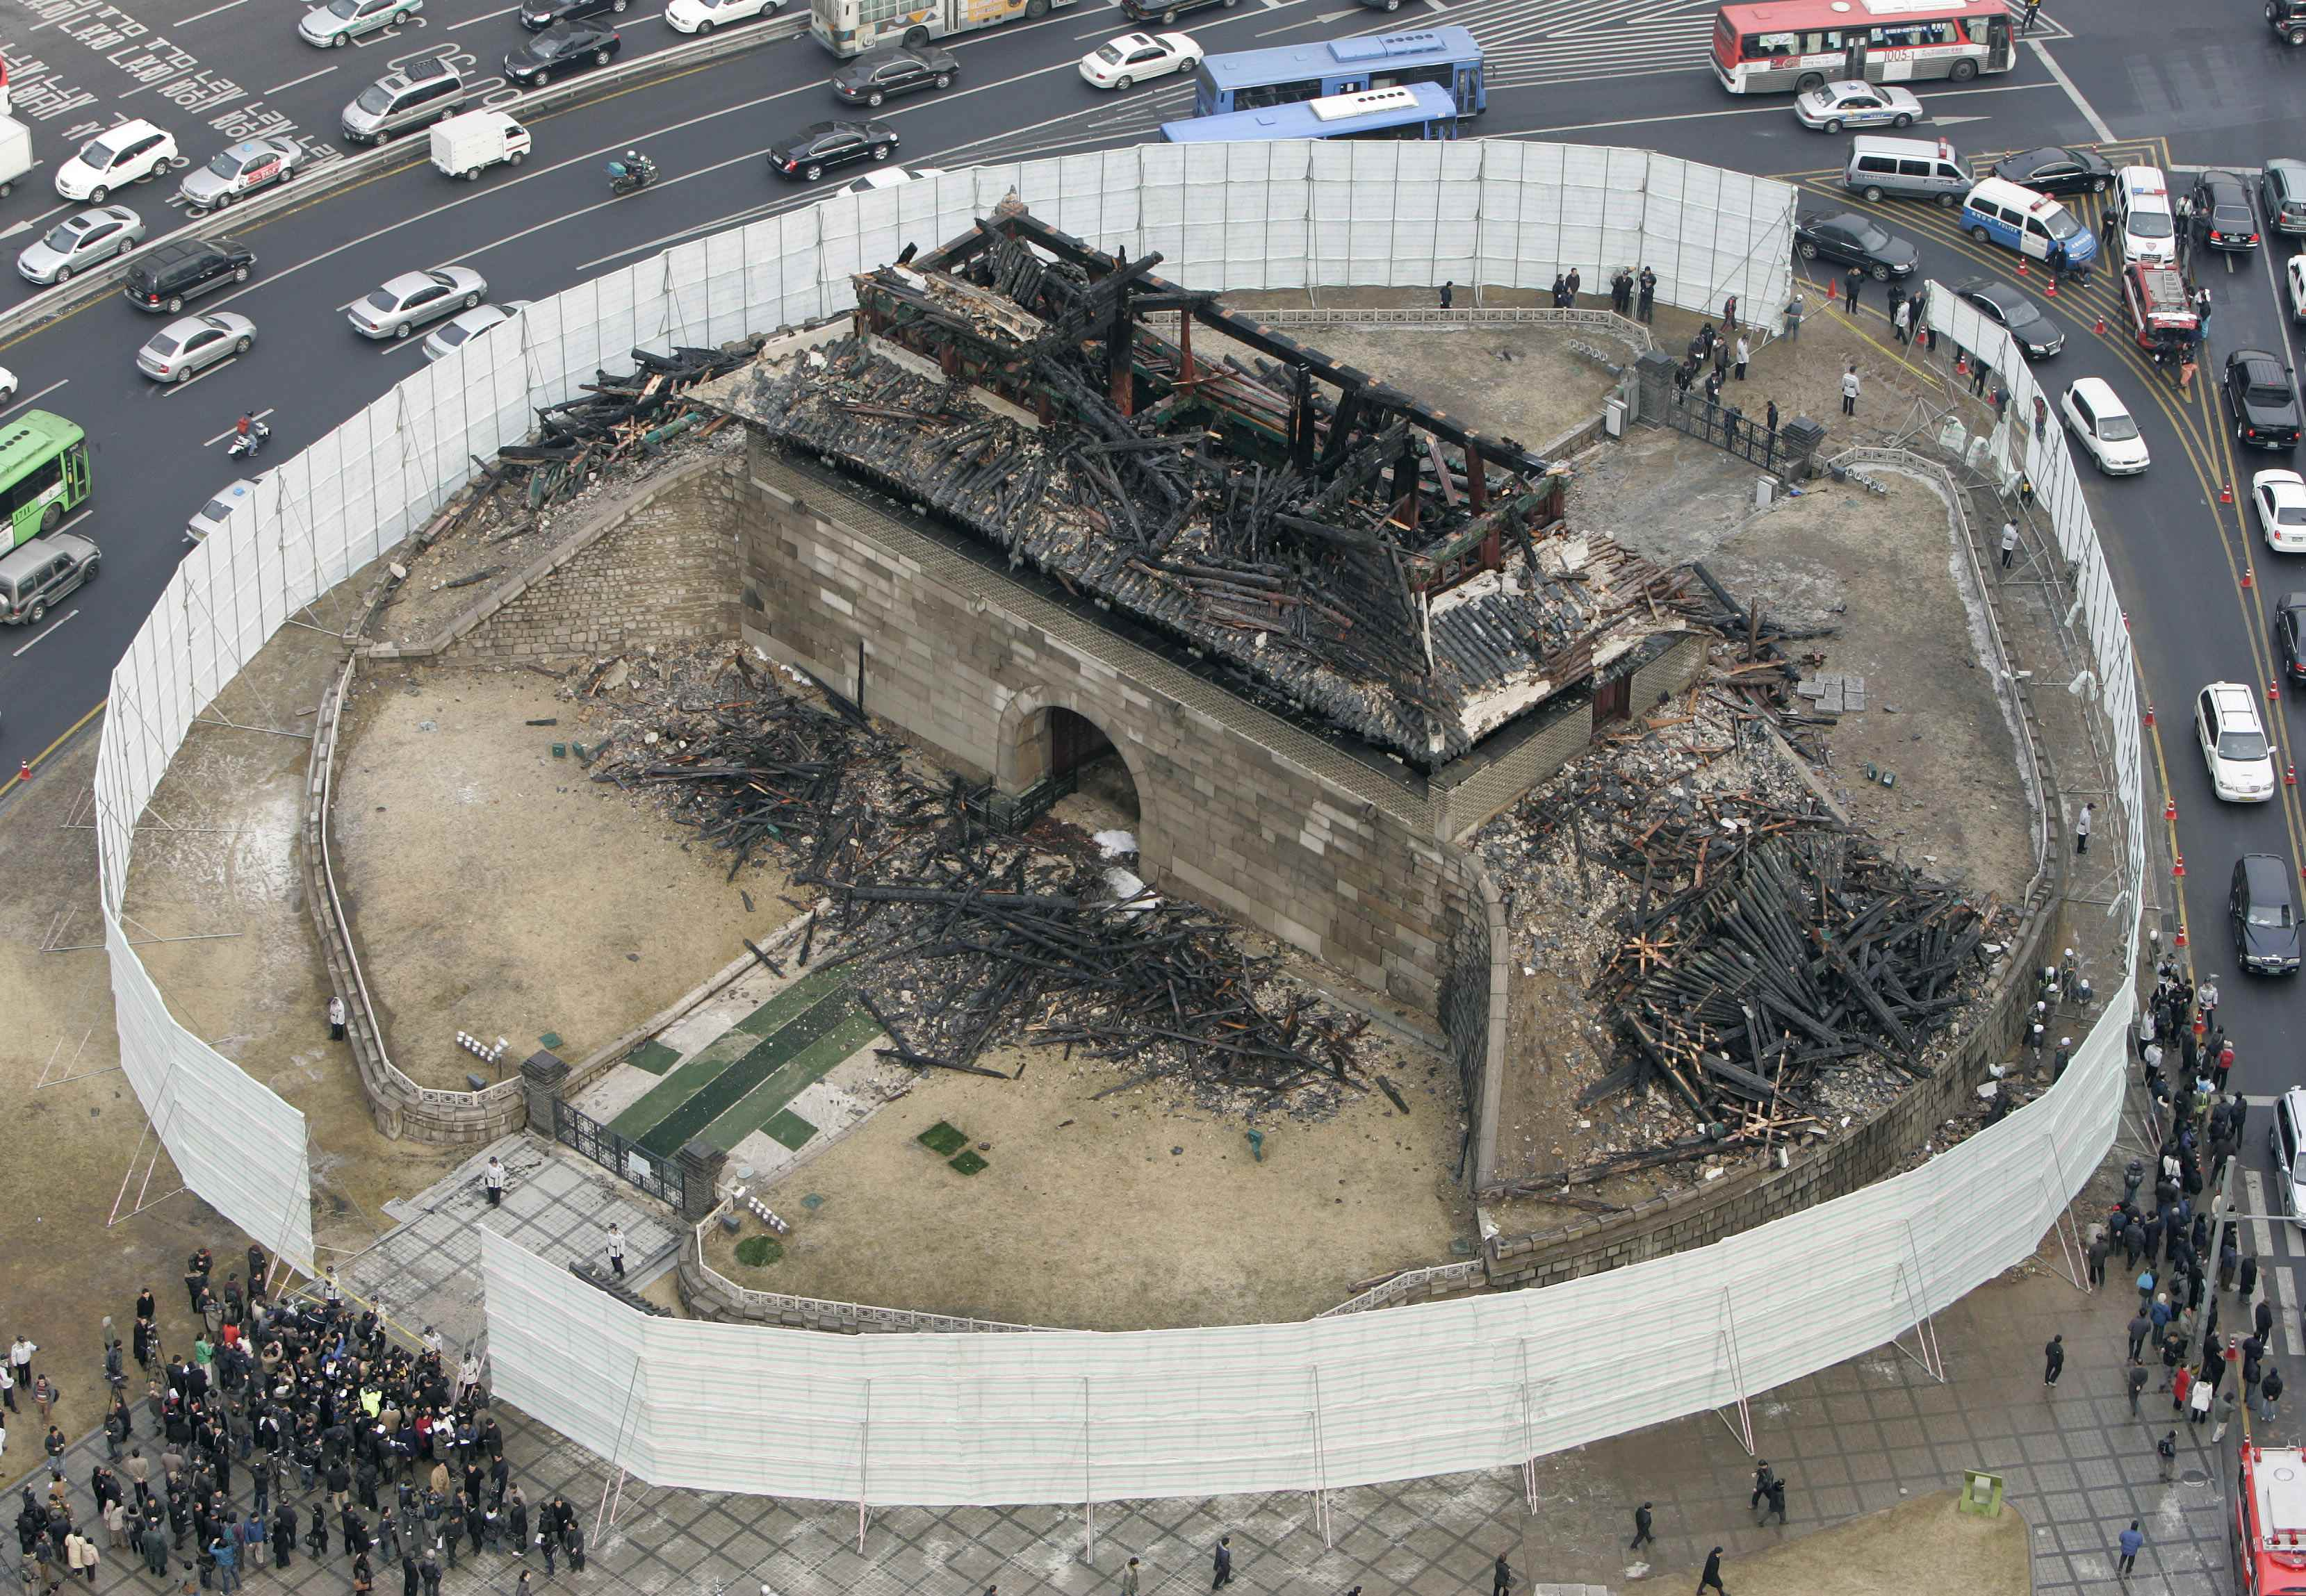 Seoul S Iconic Ancient City Gate Destroyed By Fire